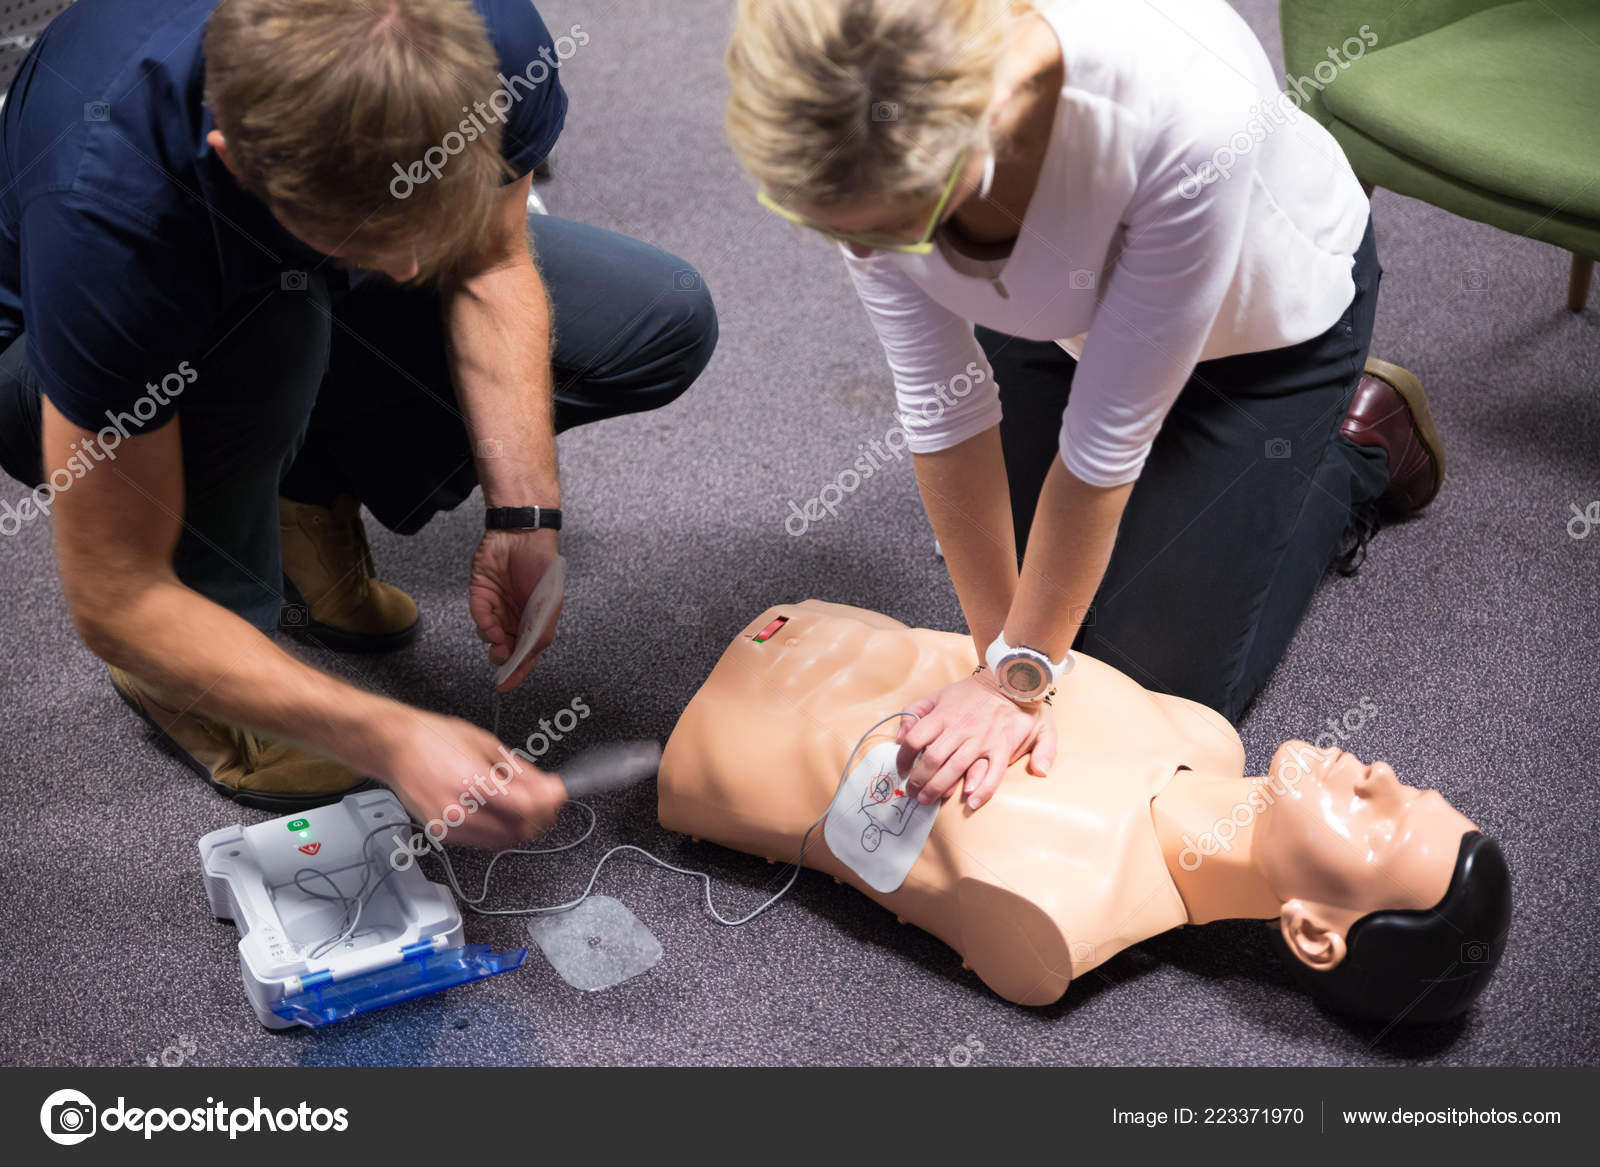 First Aid Training  Defibrillator CPR Practice — Stock Photo